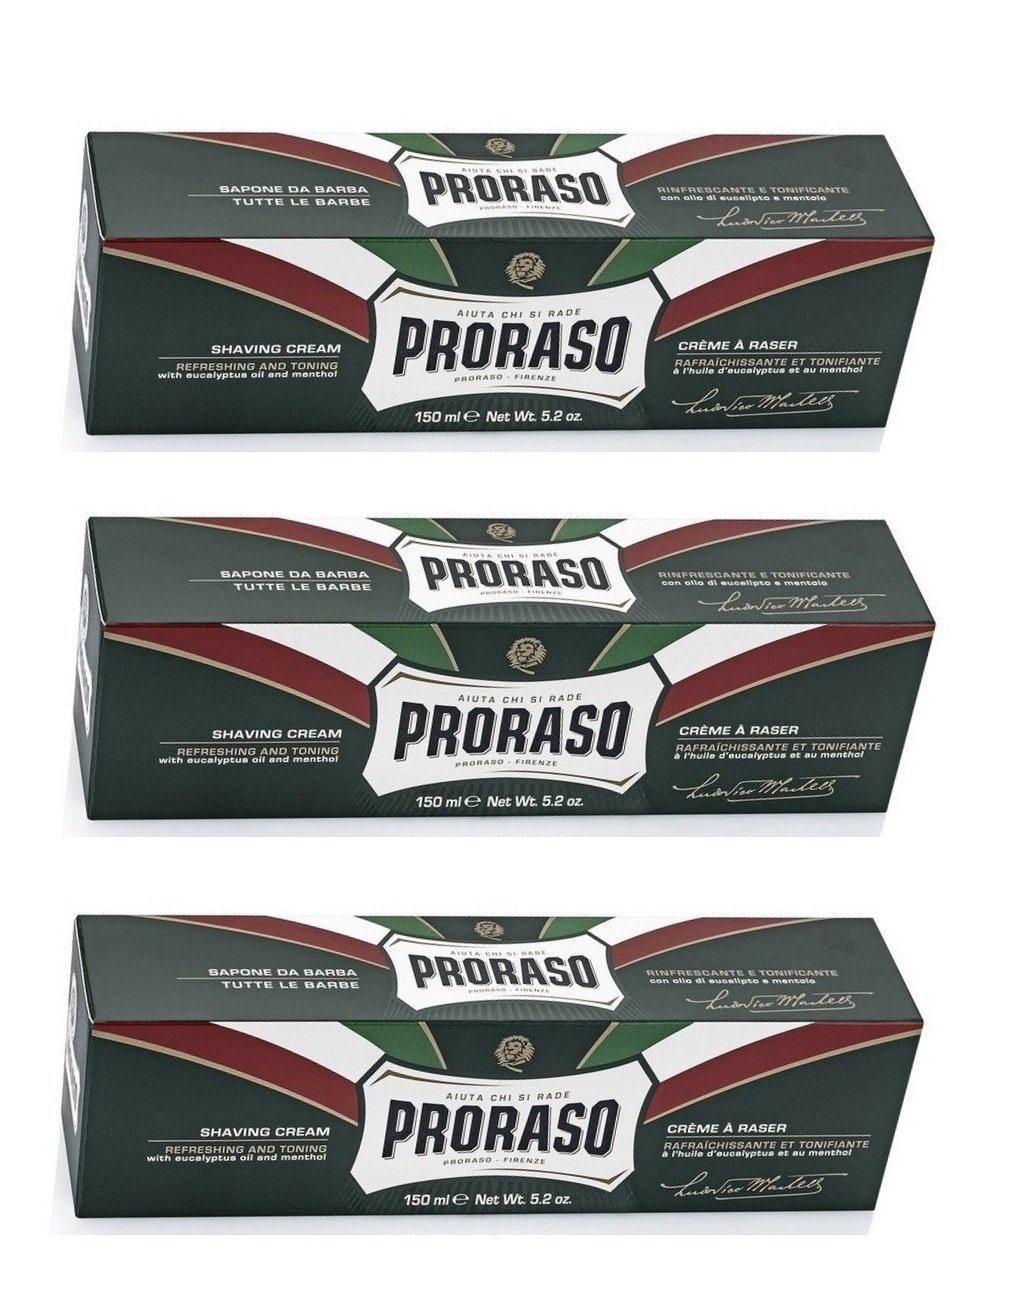 Proraso Shaving Cream, Eucalyptus & Menthol, 150 Ml, New Formulation (Pack of 3) Ludovico Martelli s.r.l.